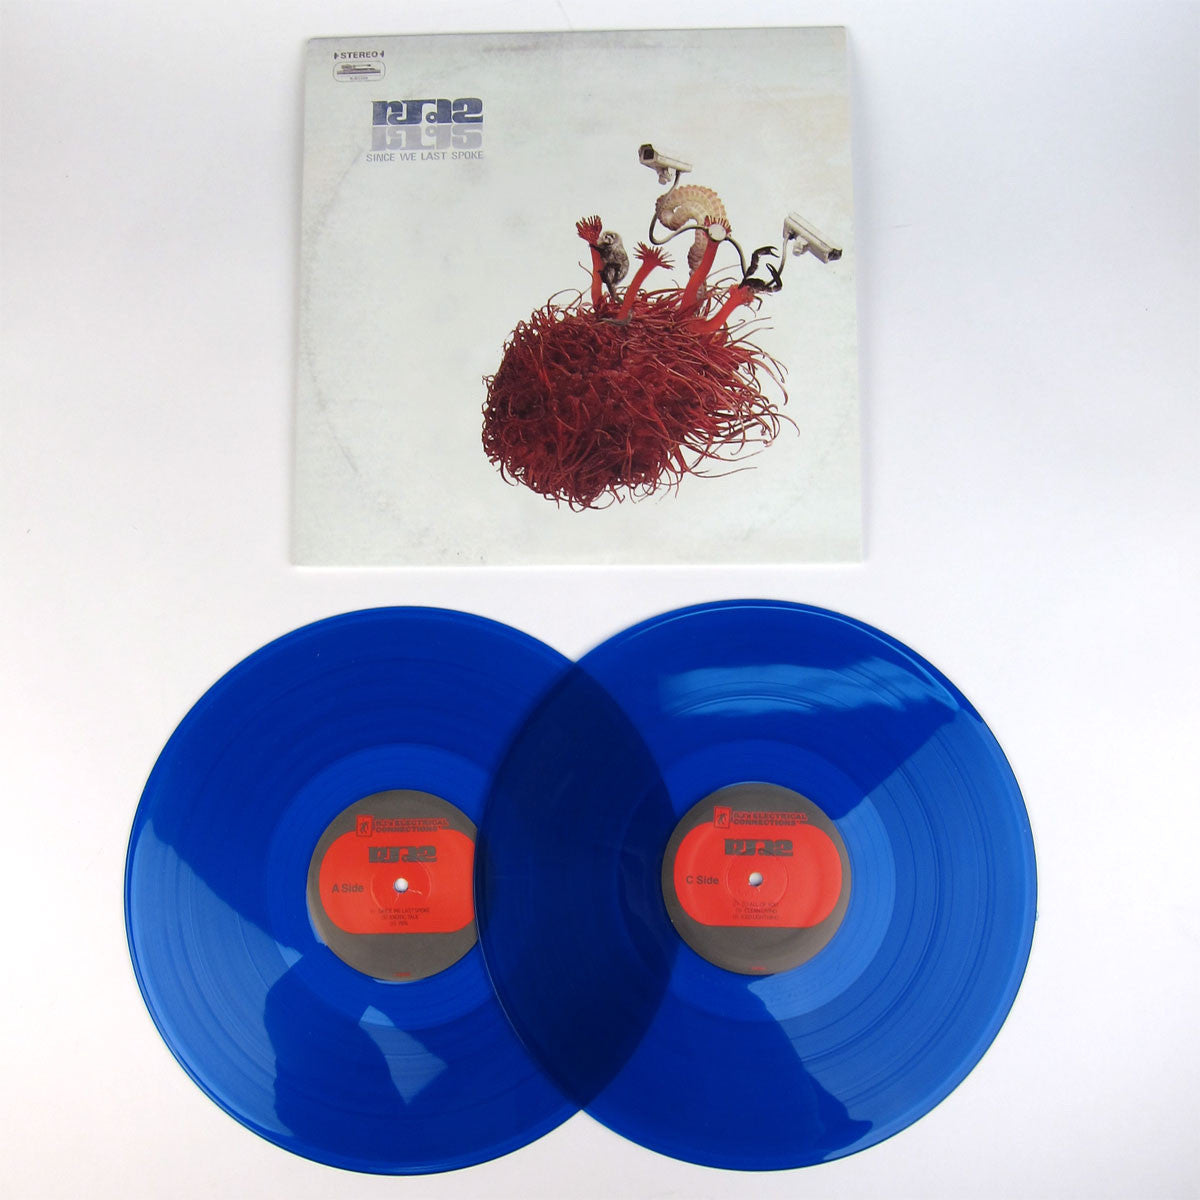 RJD2: Since We Last Spoke (Colored Vinyl) Vinyl 2LP